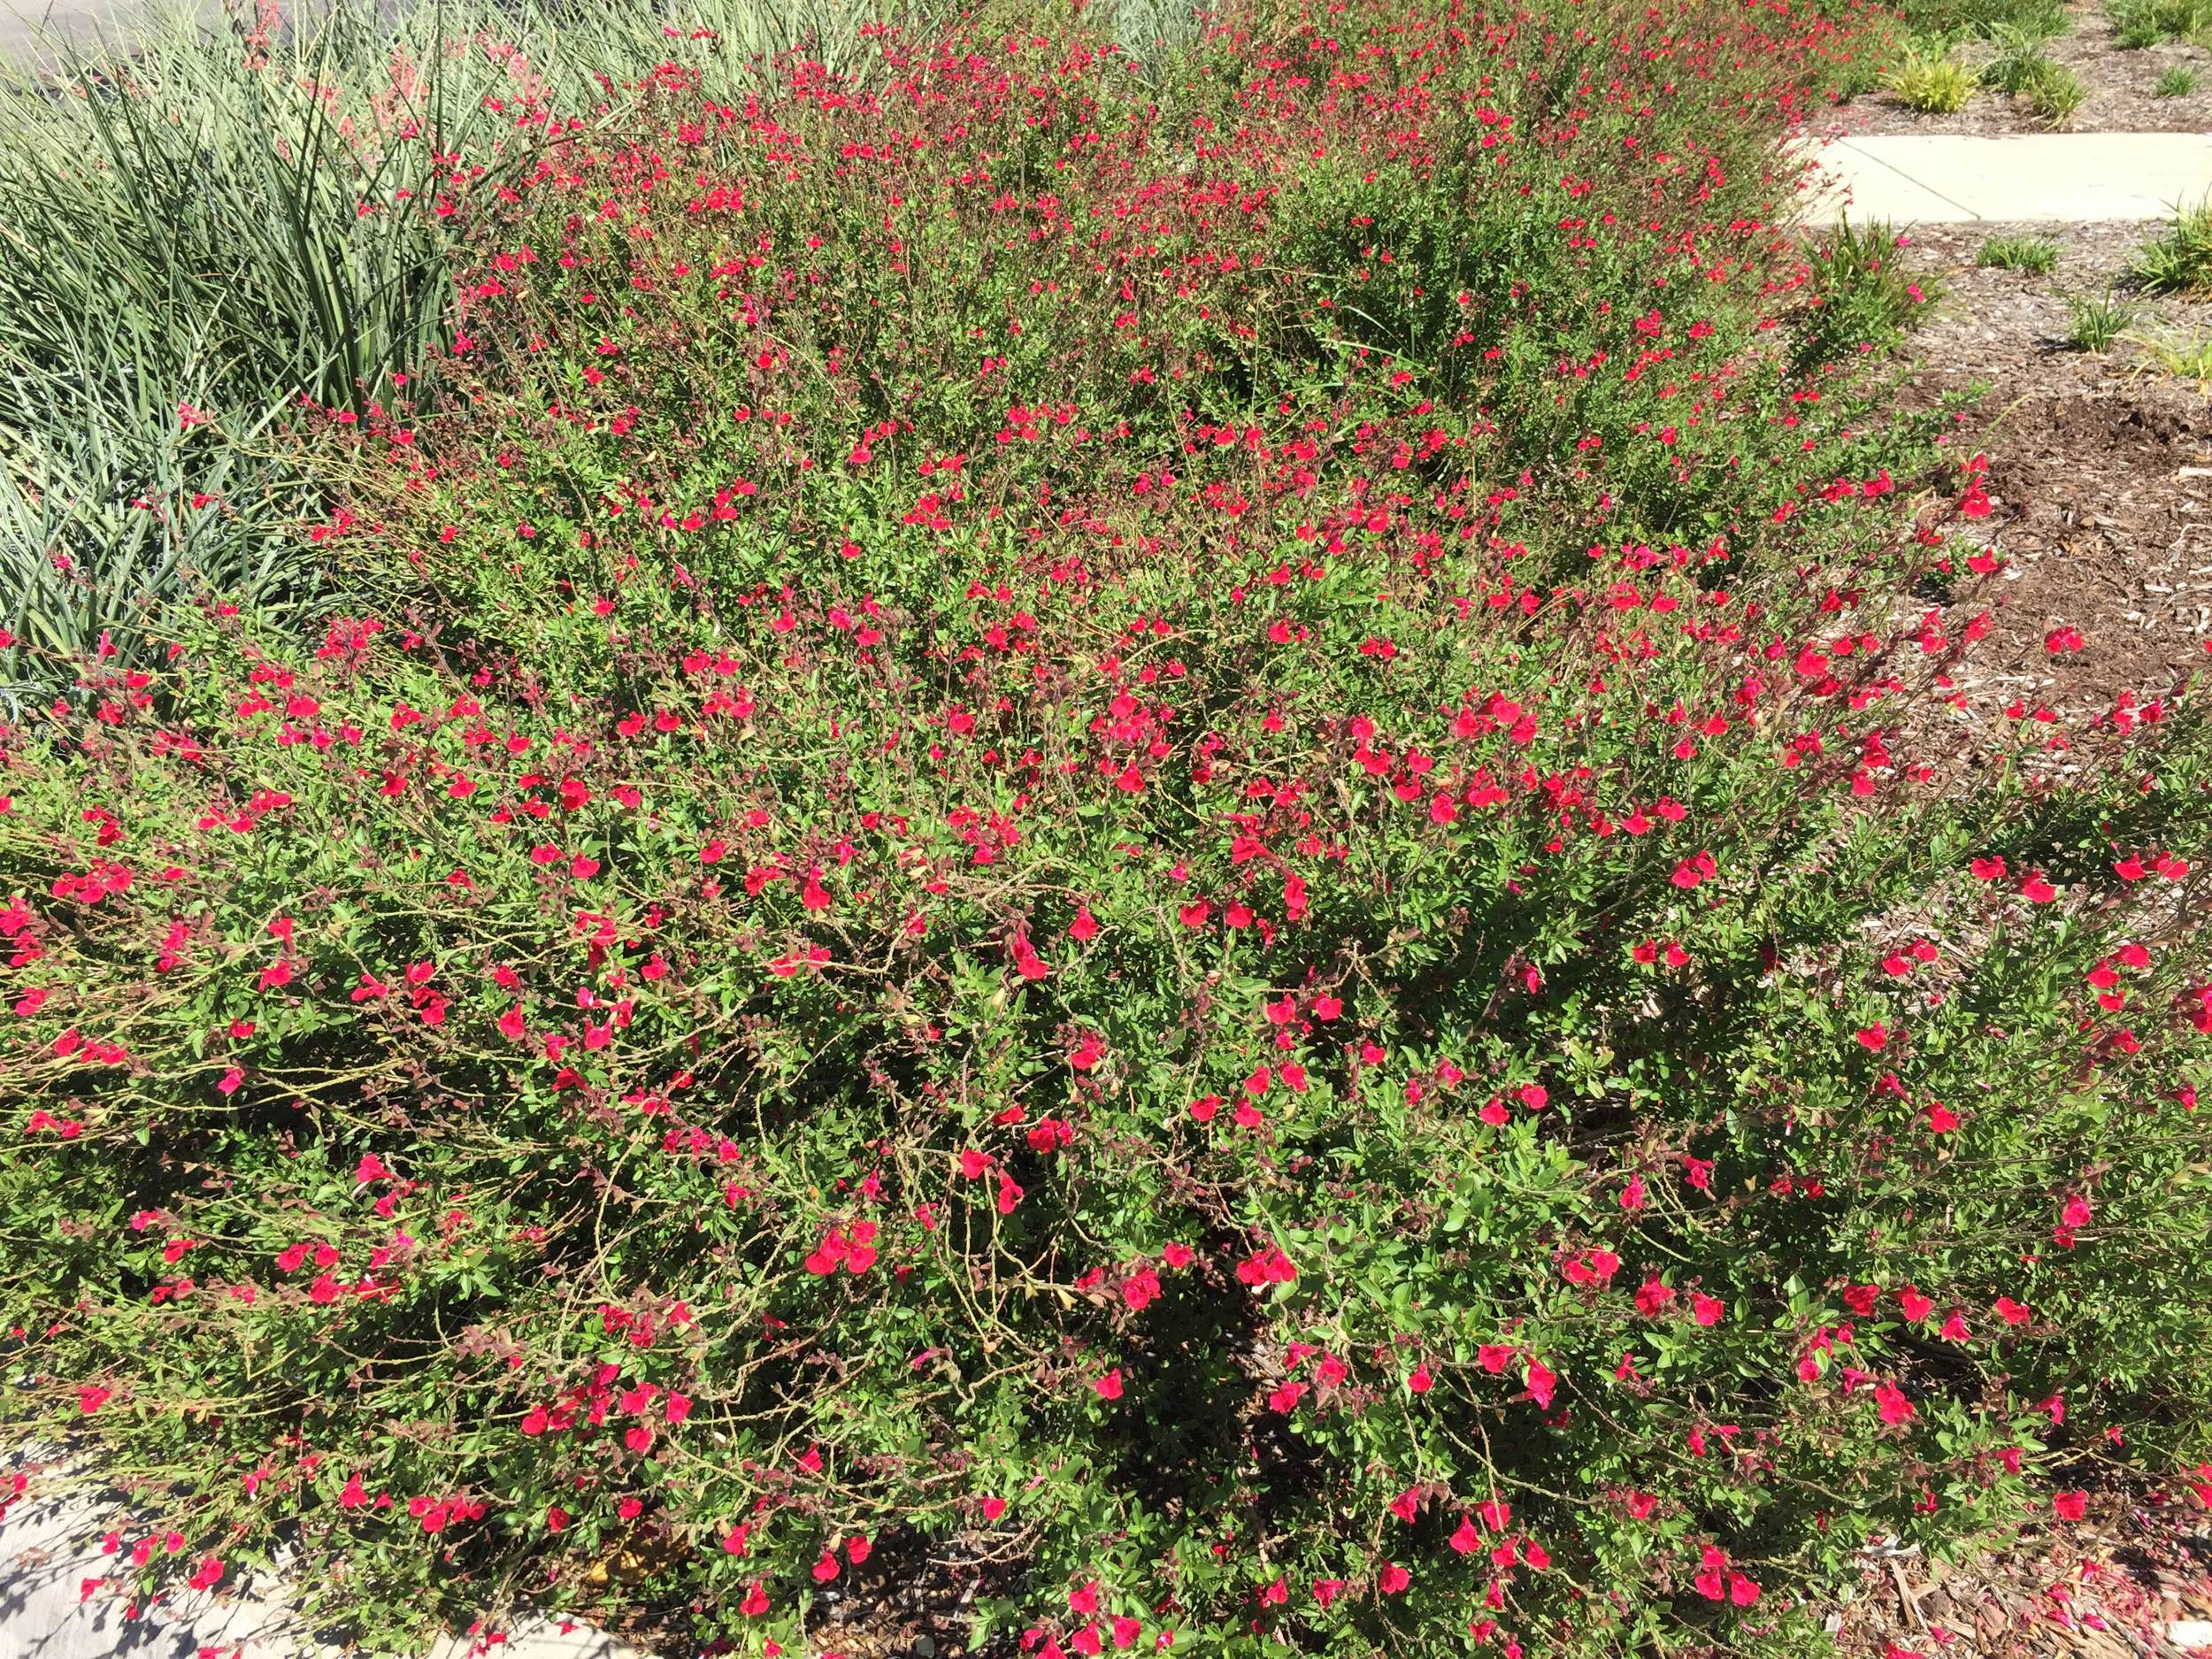 Autumn Sage (Salvia greggii) i - A heat loving, drought tolerant perennial with red blooms from sprint through fall.